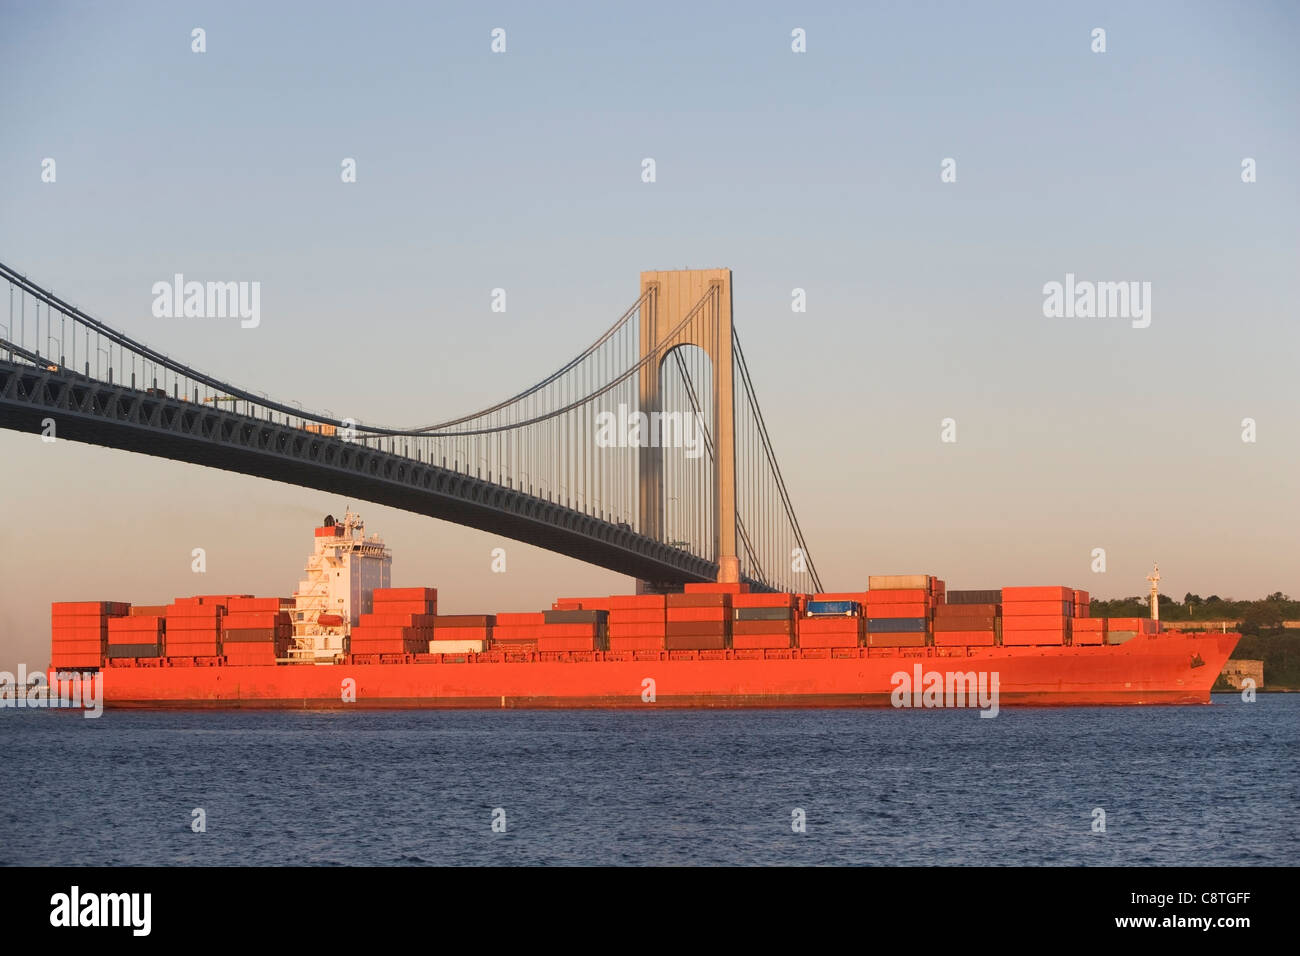 USA, New York State, New York City, Brooklyn, Container Ship under Verrazano-Narrows Bridge - Stock Image